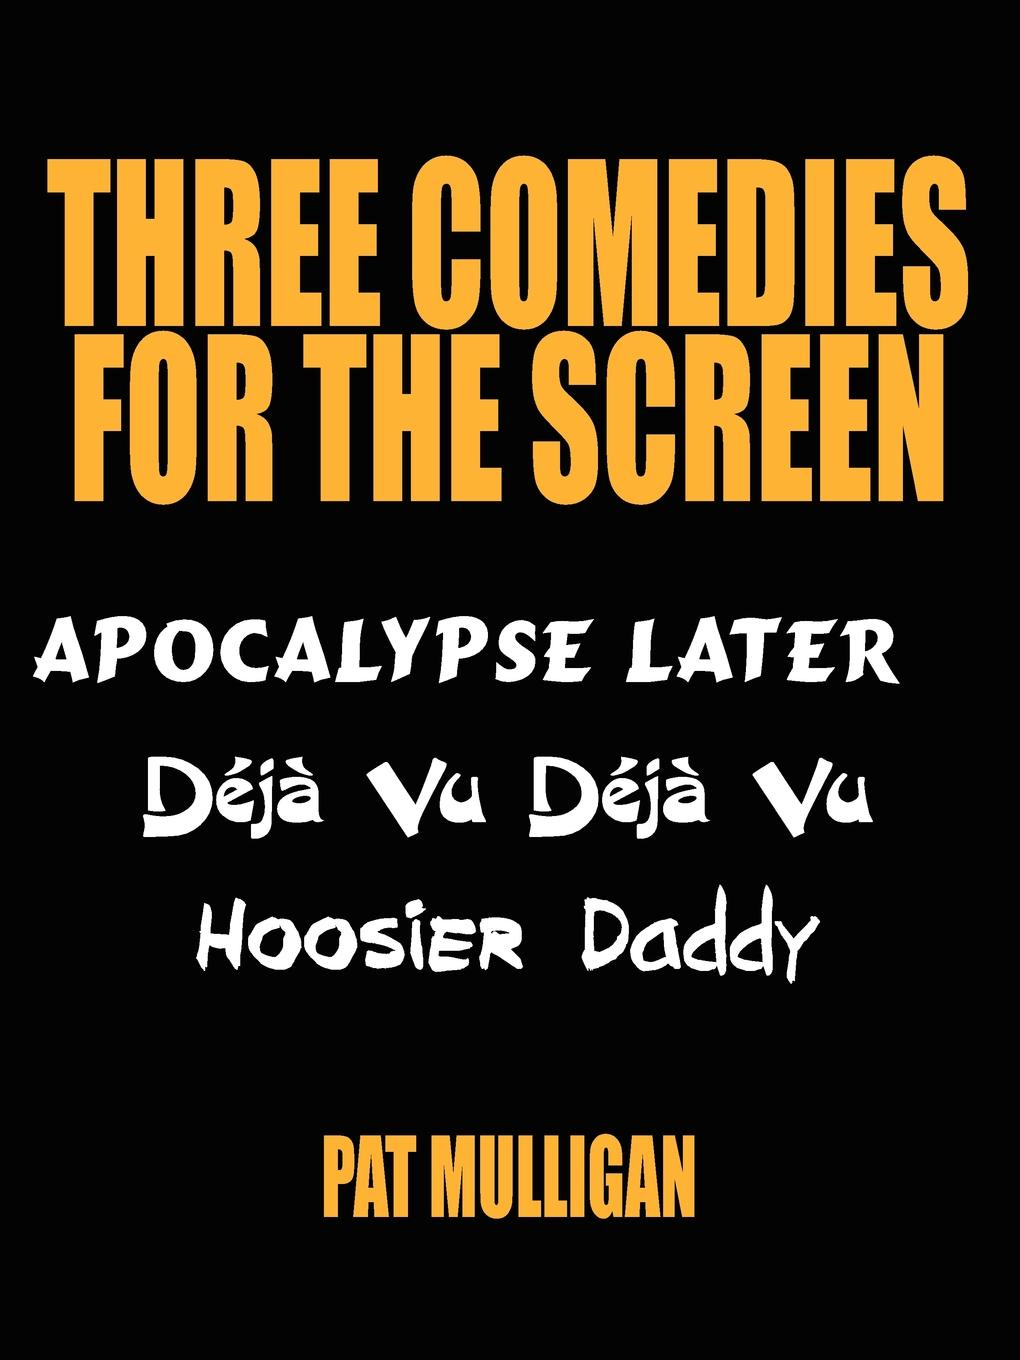 Pat Mulligan Three Comedies for the Screen. Apocalypse Later, Deja Vu Deja Vu, Hoosier Daddy